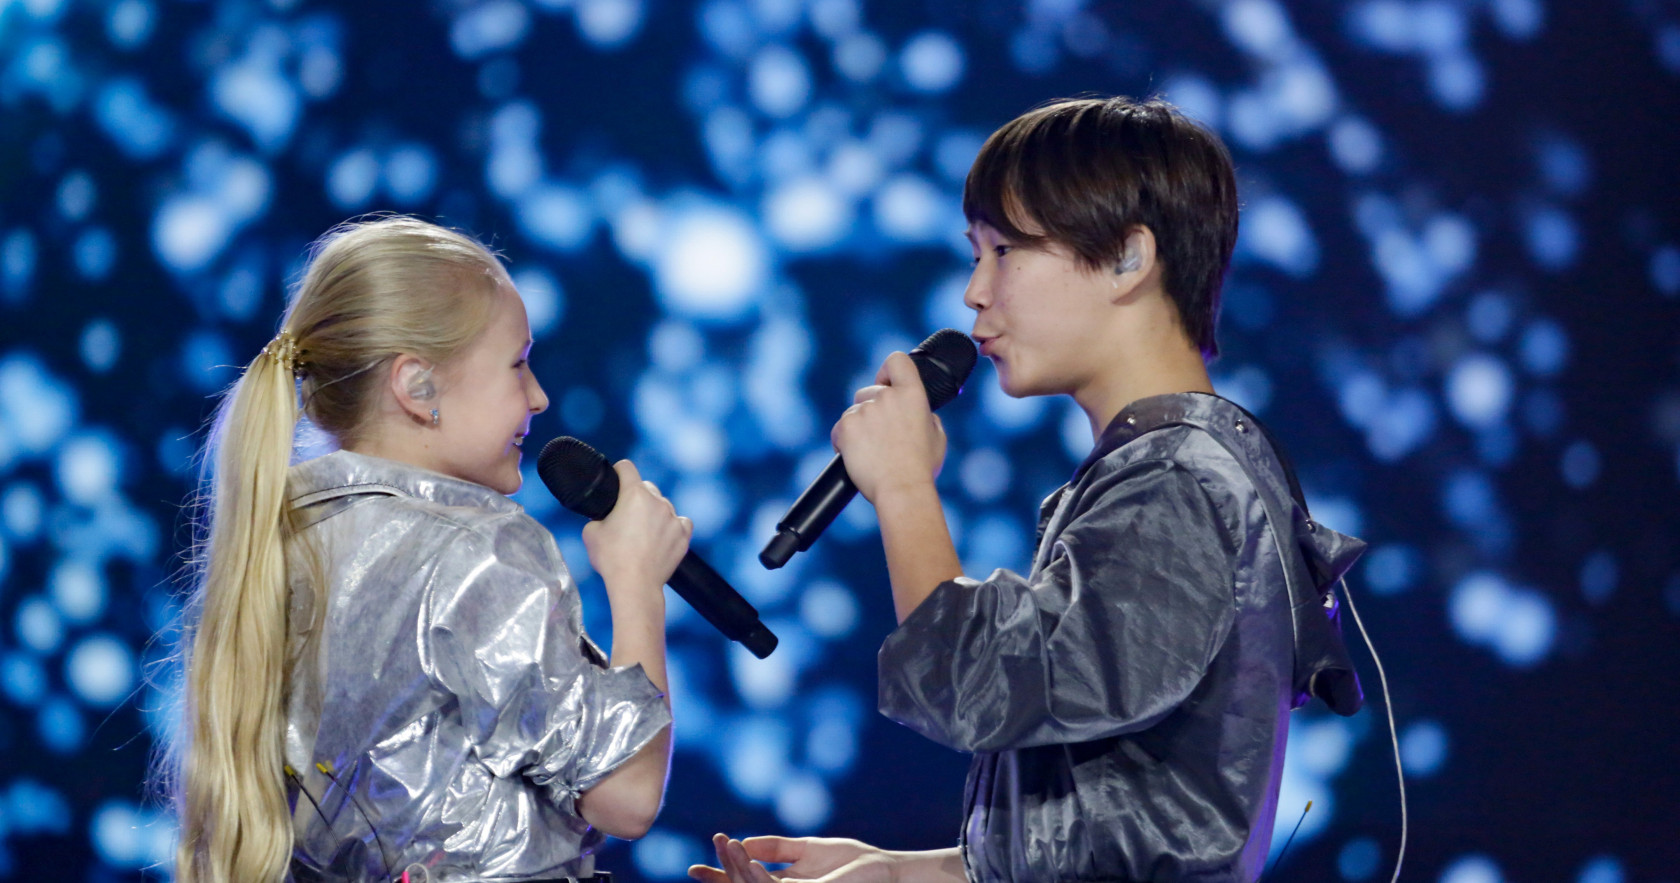 Russia: Here are the Junior Eurovision 2020 national finalists